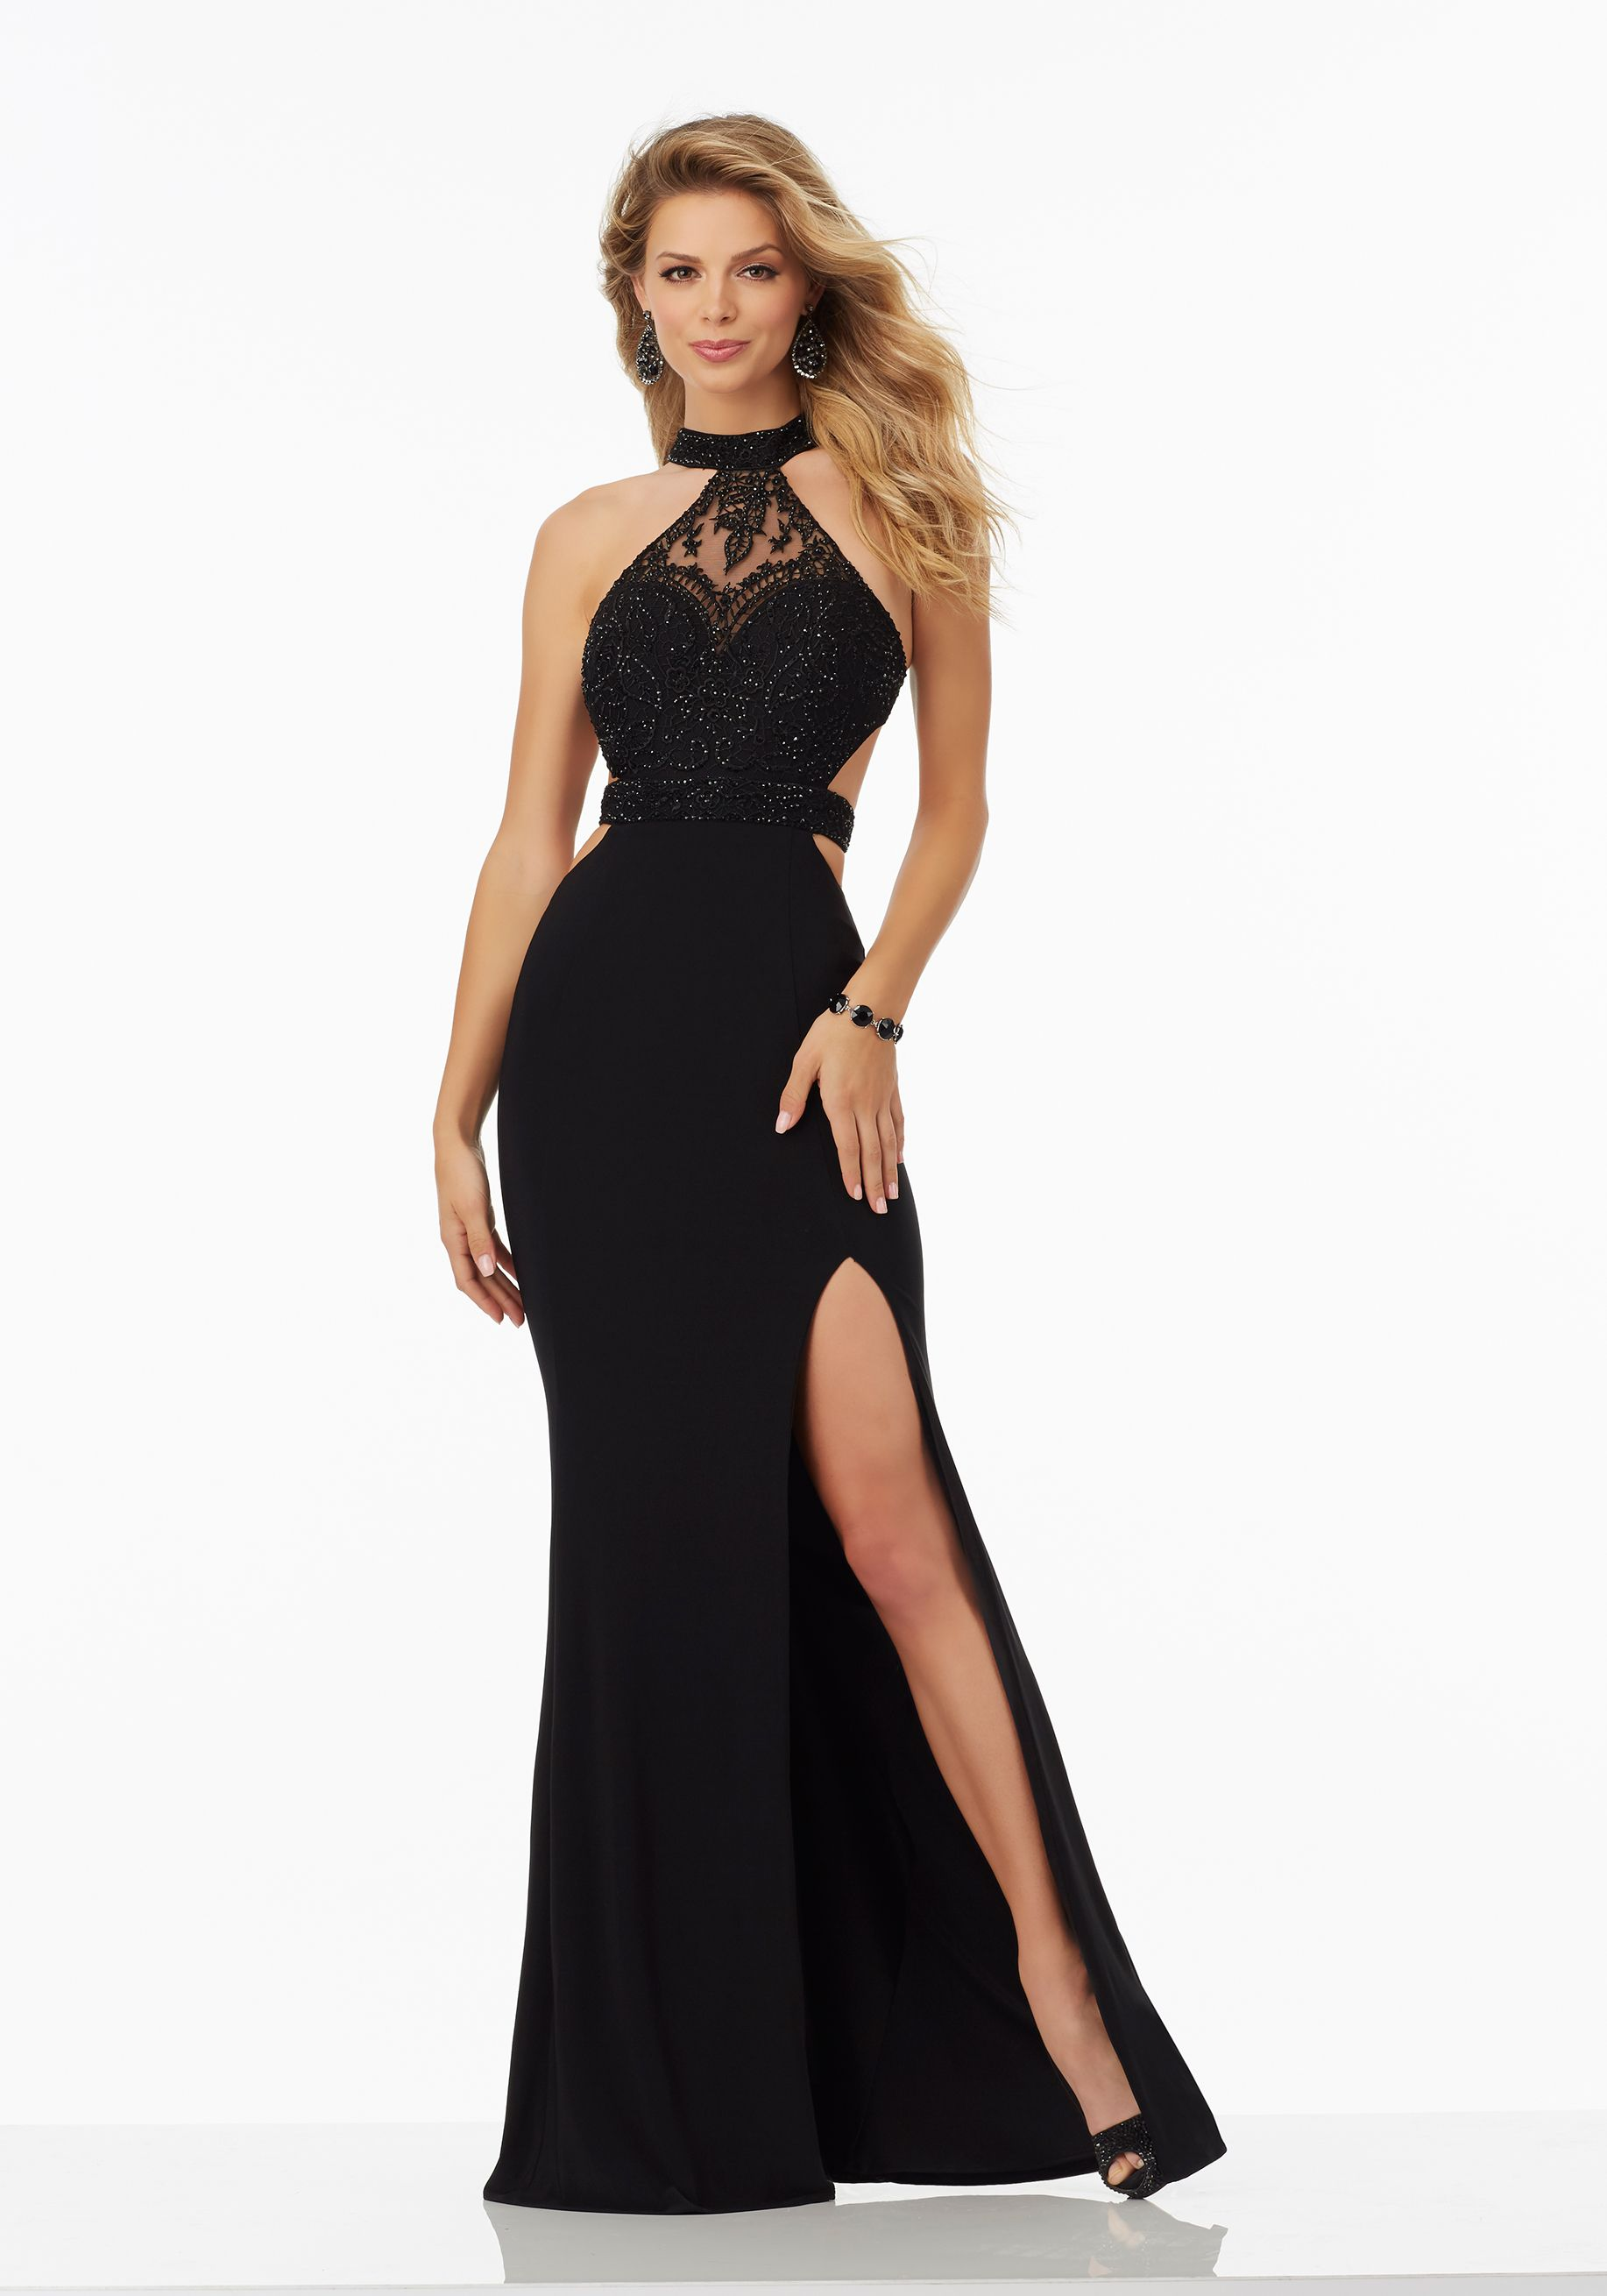 085d9e438 Browse our prom and graduation dress image gallery for a small sample of  the hundreds of styles available in store.